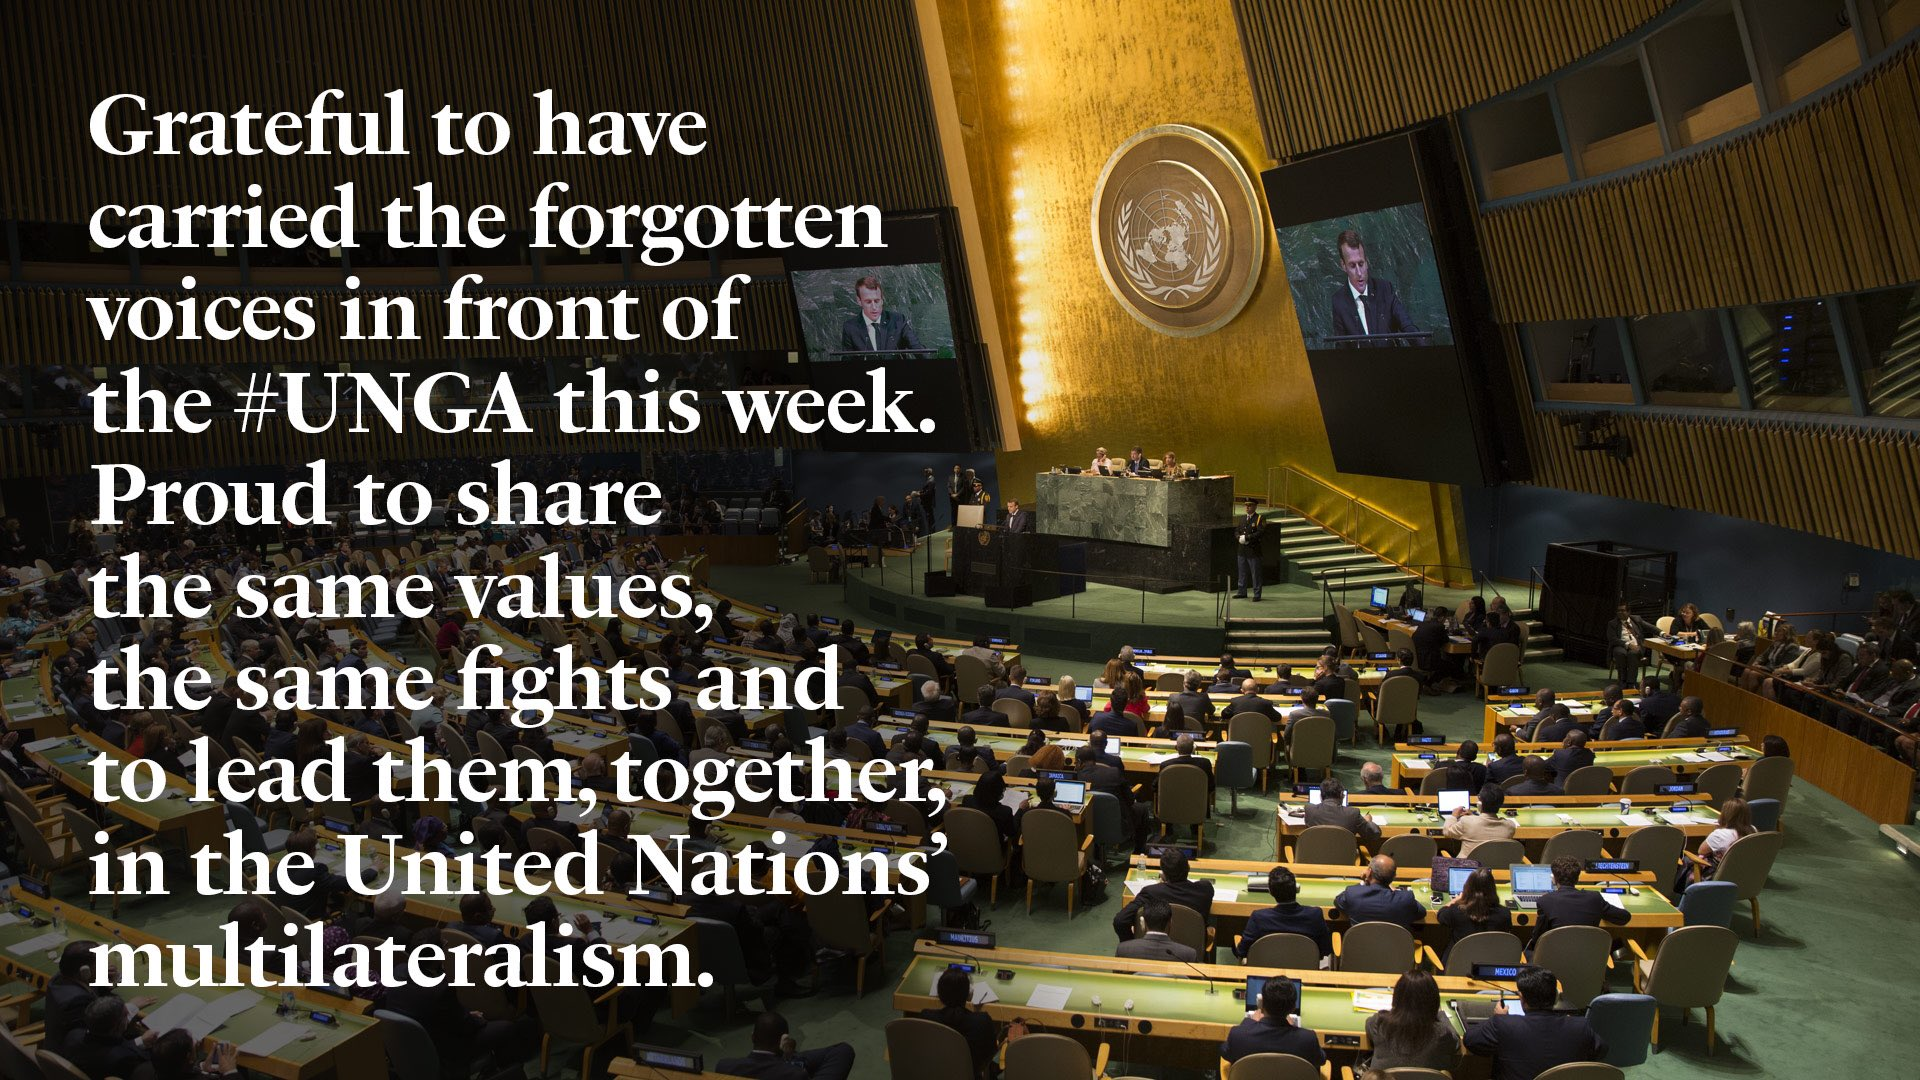 Grateful to have carried the forgotten voices in front of the #UNGA this week. https://t.co/LjmN4AfIUD